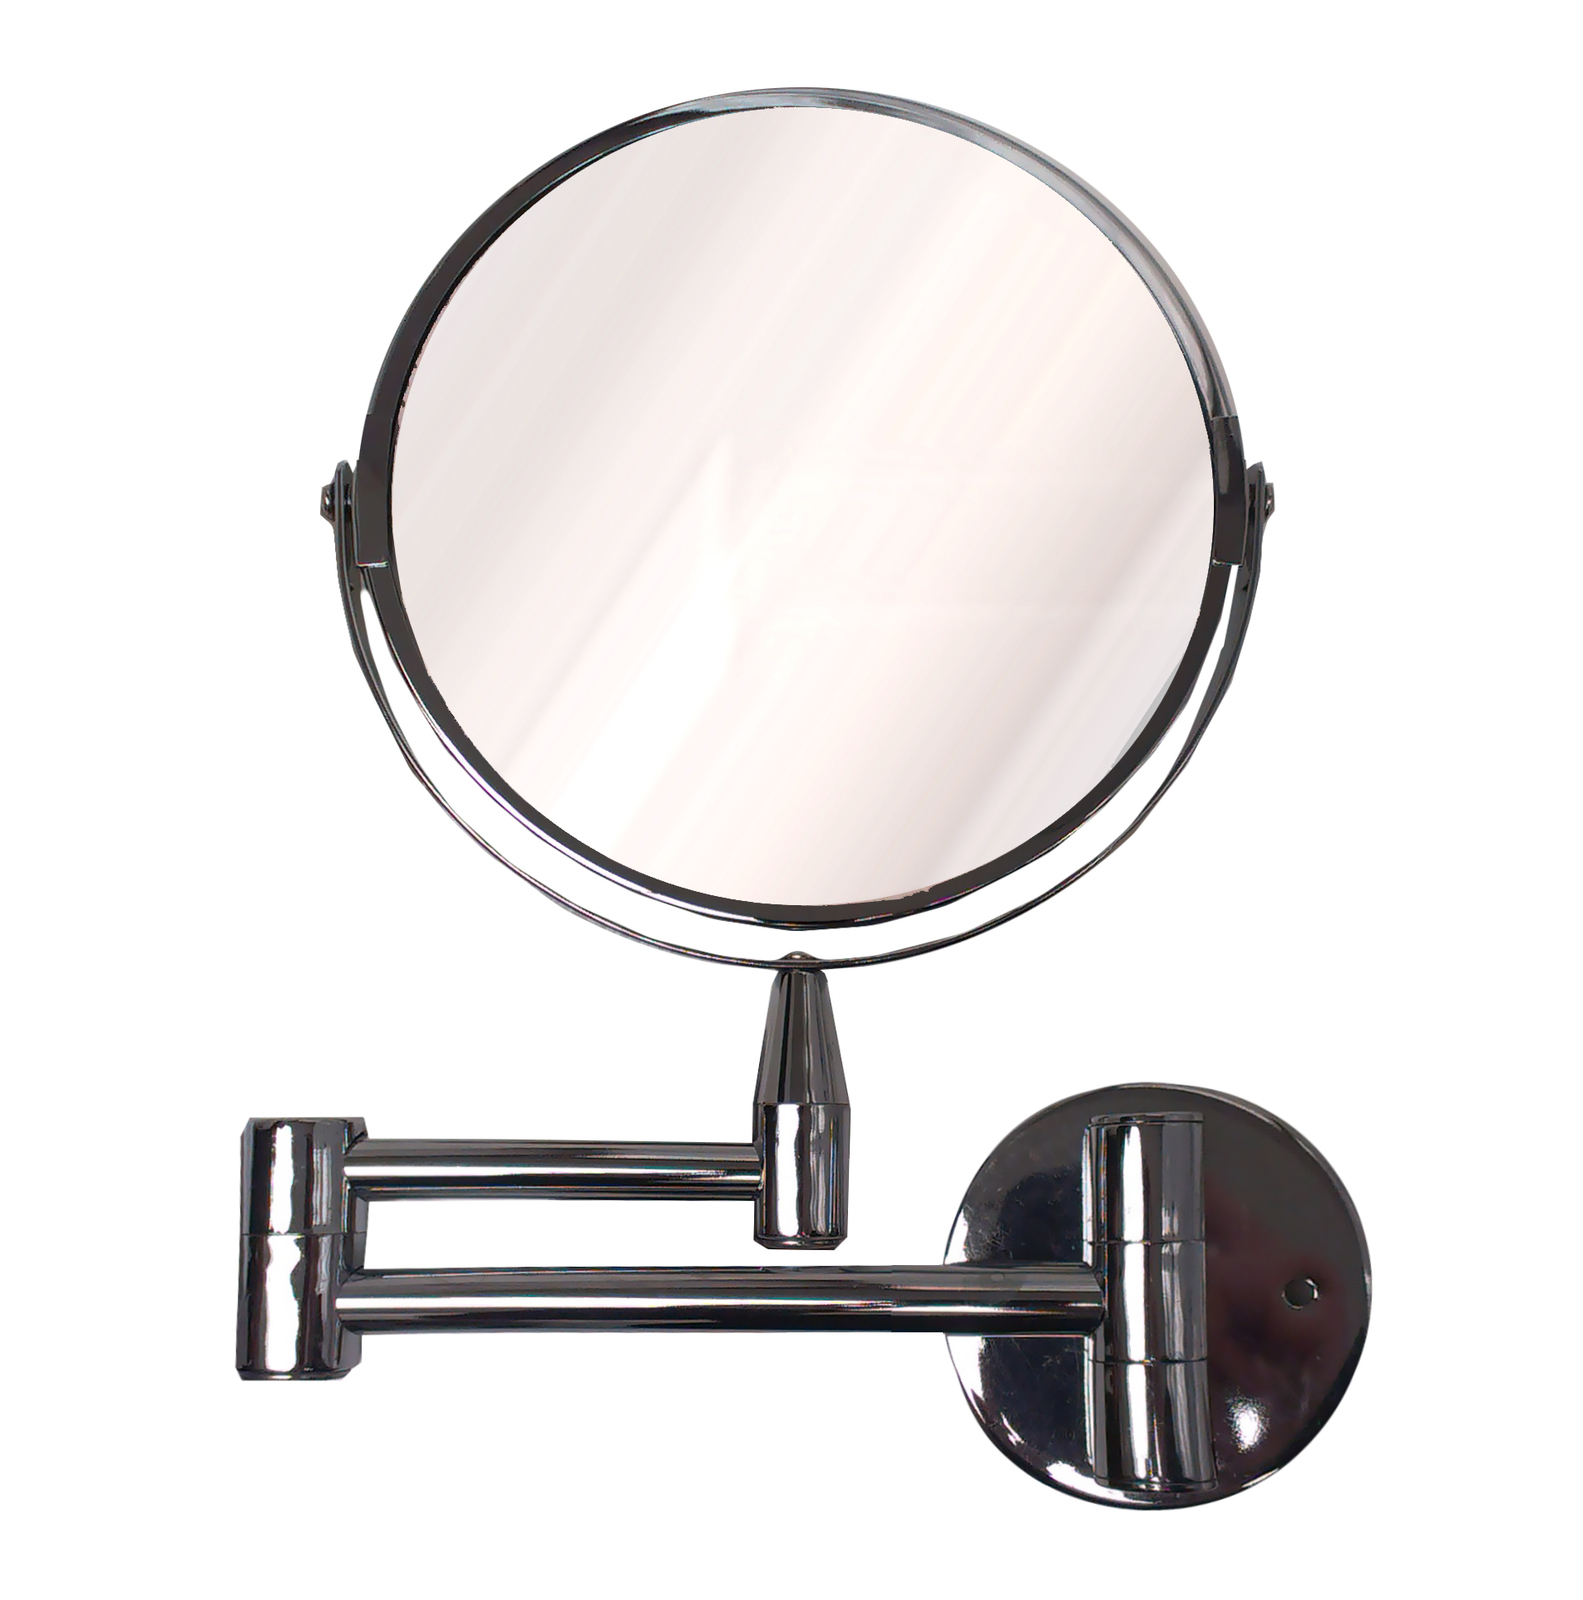 Widely Used Wall Mirror, Folding, Metal Chrome Regarding Folding Wall Mirrors (View 20 of 20)